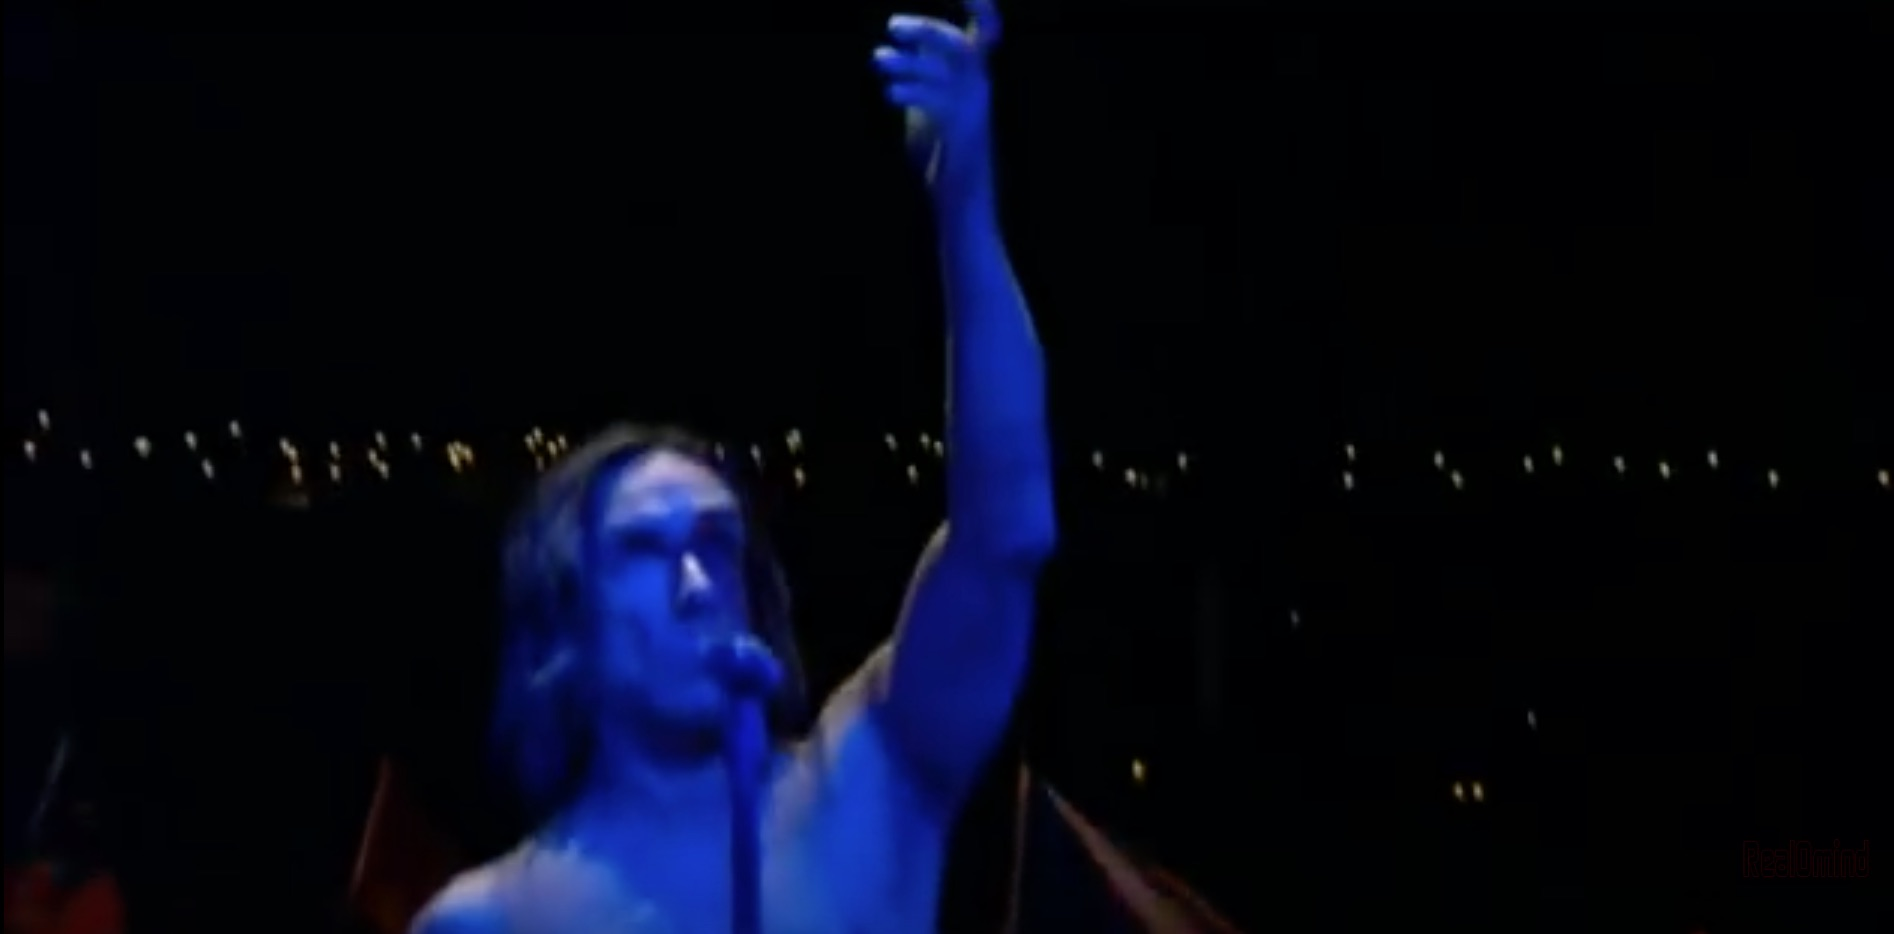 _45__Iggy_and_The_Stooges_at_Glastonbury_2007_-_YouTube 4 copy.jpg